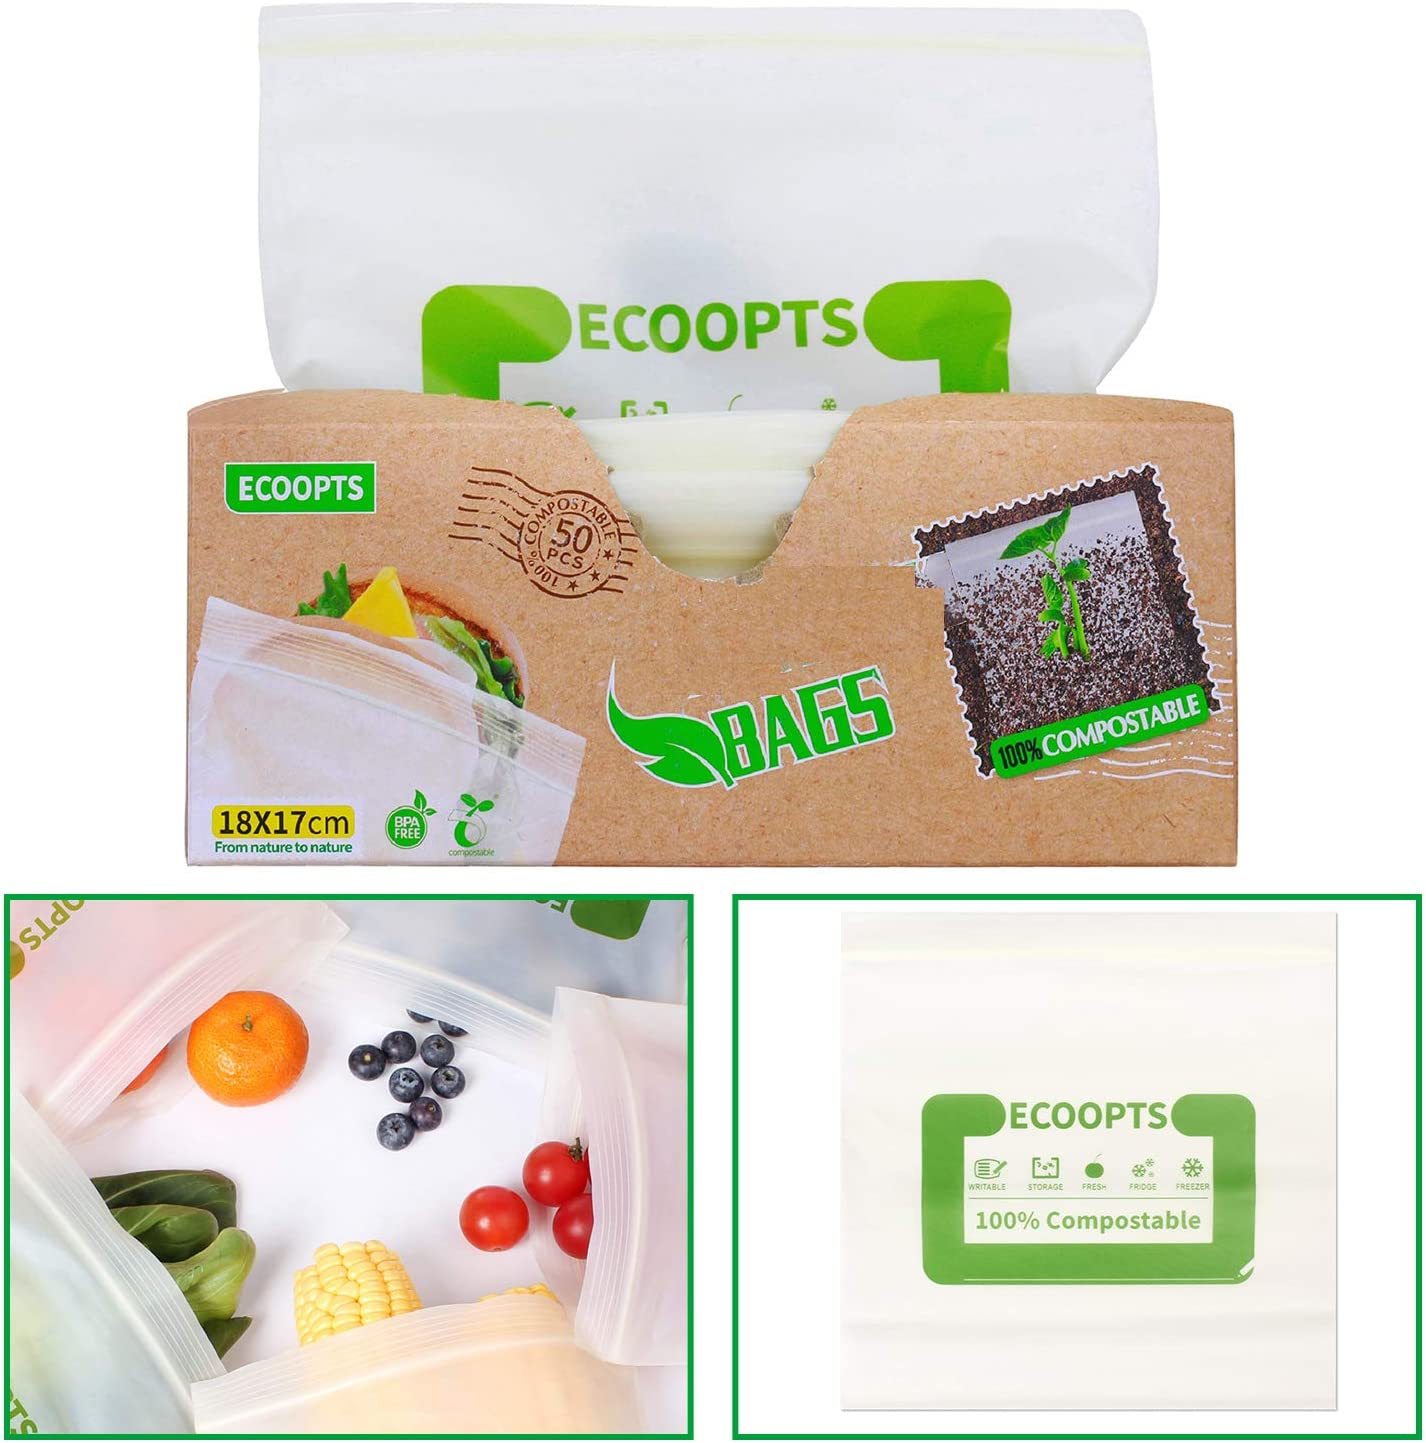 50 Count ECOOPTS 100% Compostable Freezer Bags Reusable Food Storage Sandwich Bags For Food Organization and Storage - (7×6.7 IN/Count)